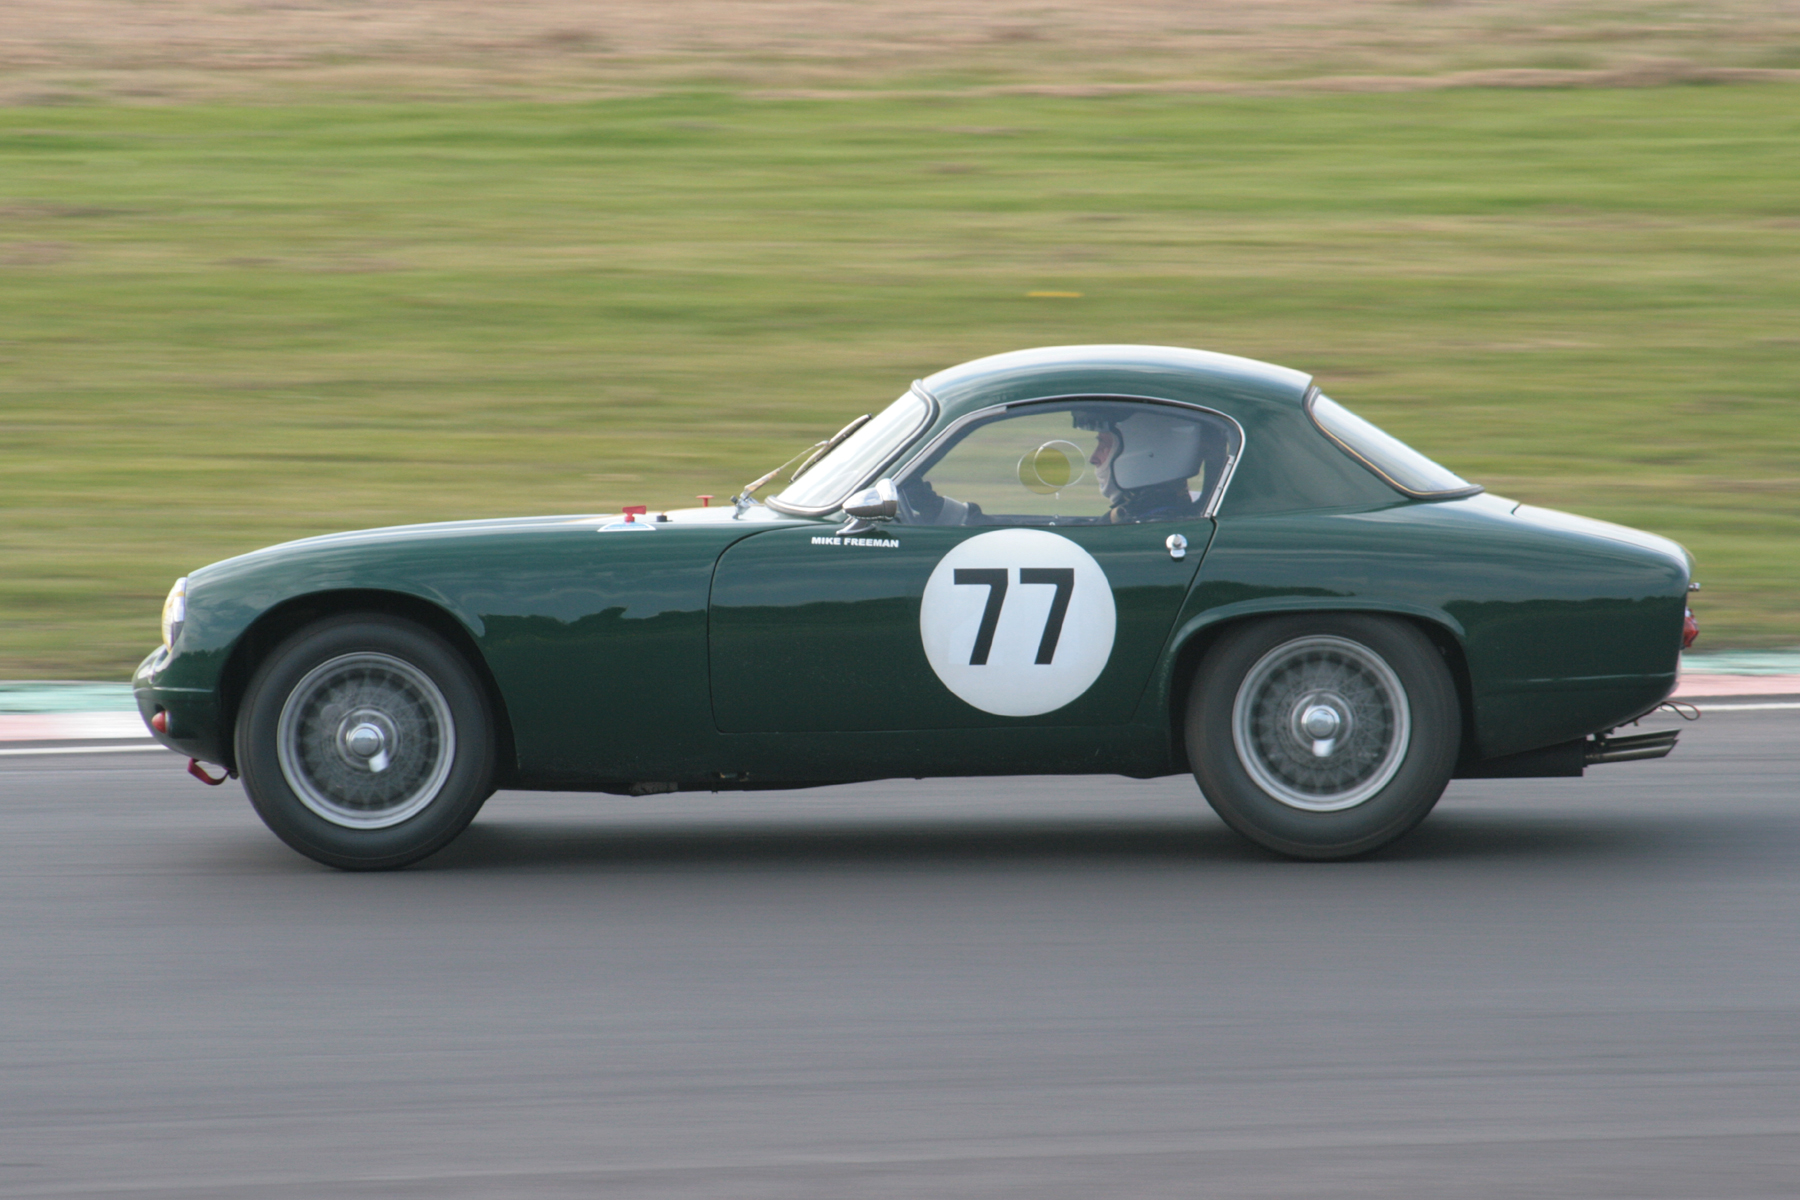 Mike Freeman in his Lotus Elite, a combination that won our Blaster Bates Trophy at Oulton Park.        Photo - JohnTurner